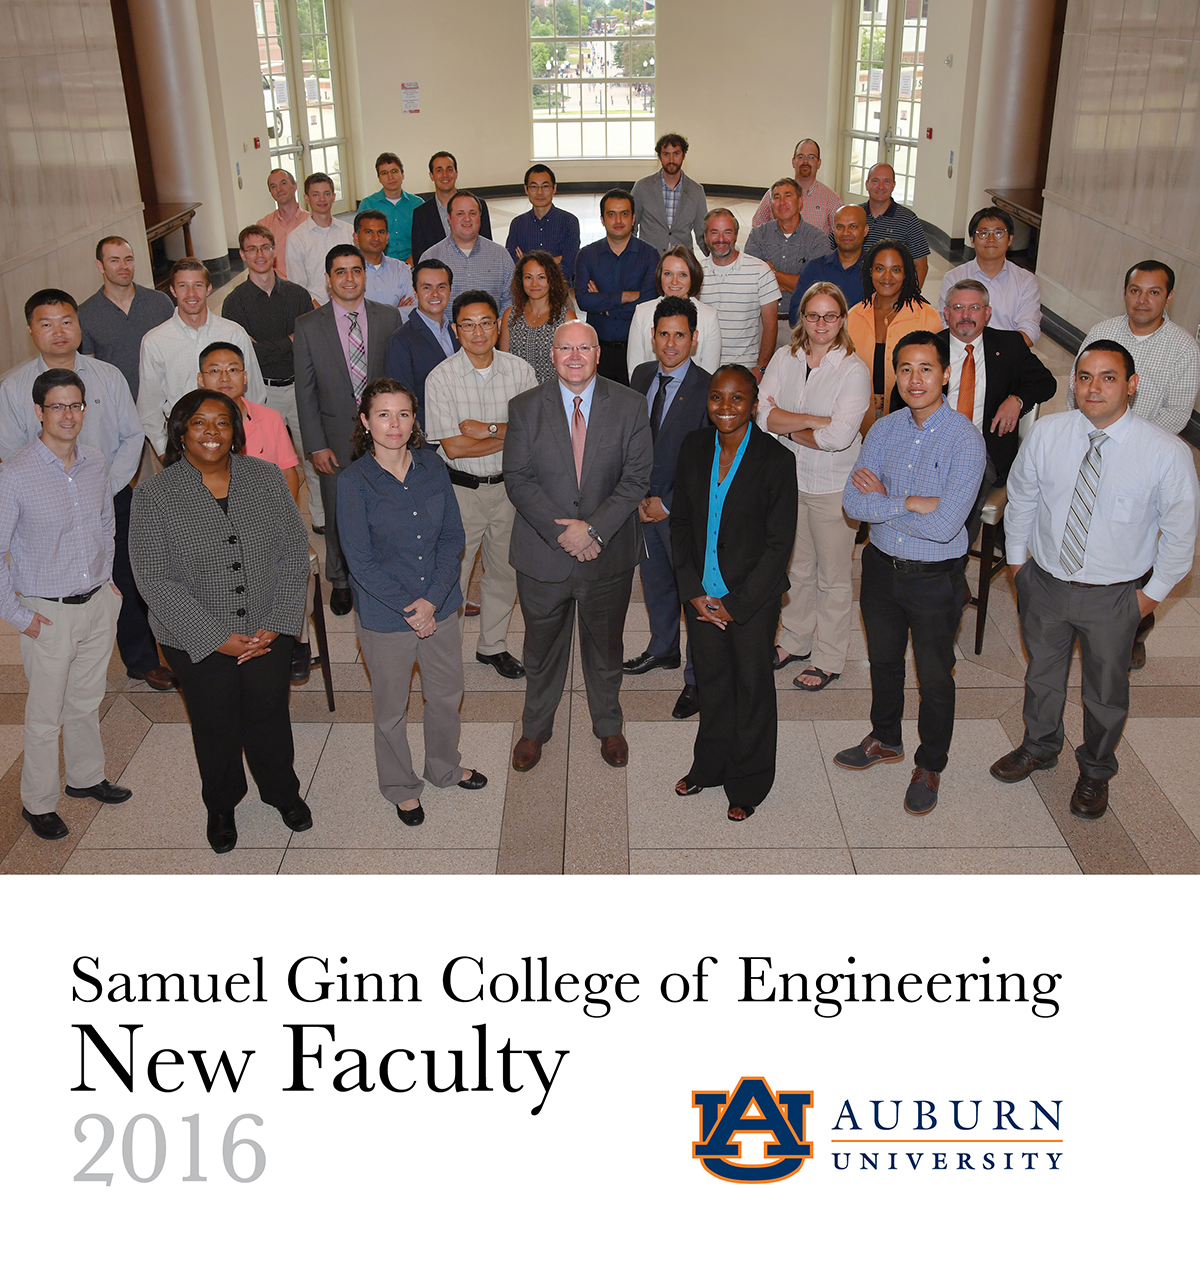 Samuel Ginn College of Engineering New Faculty 2016